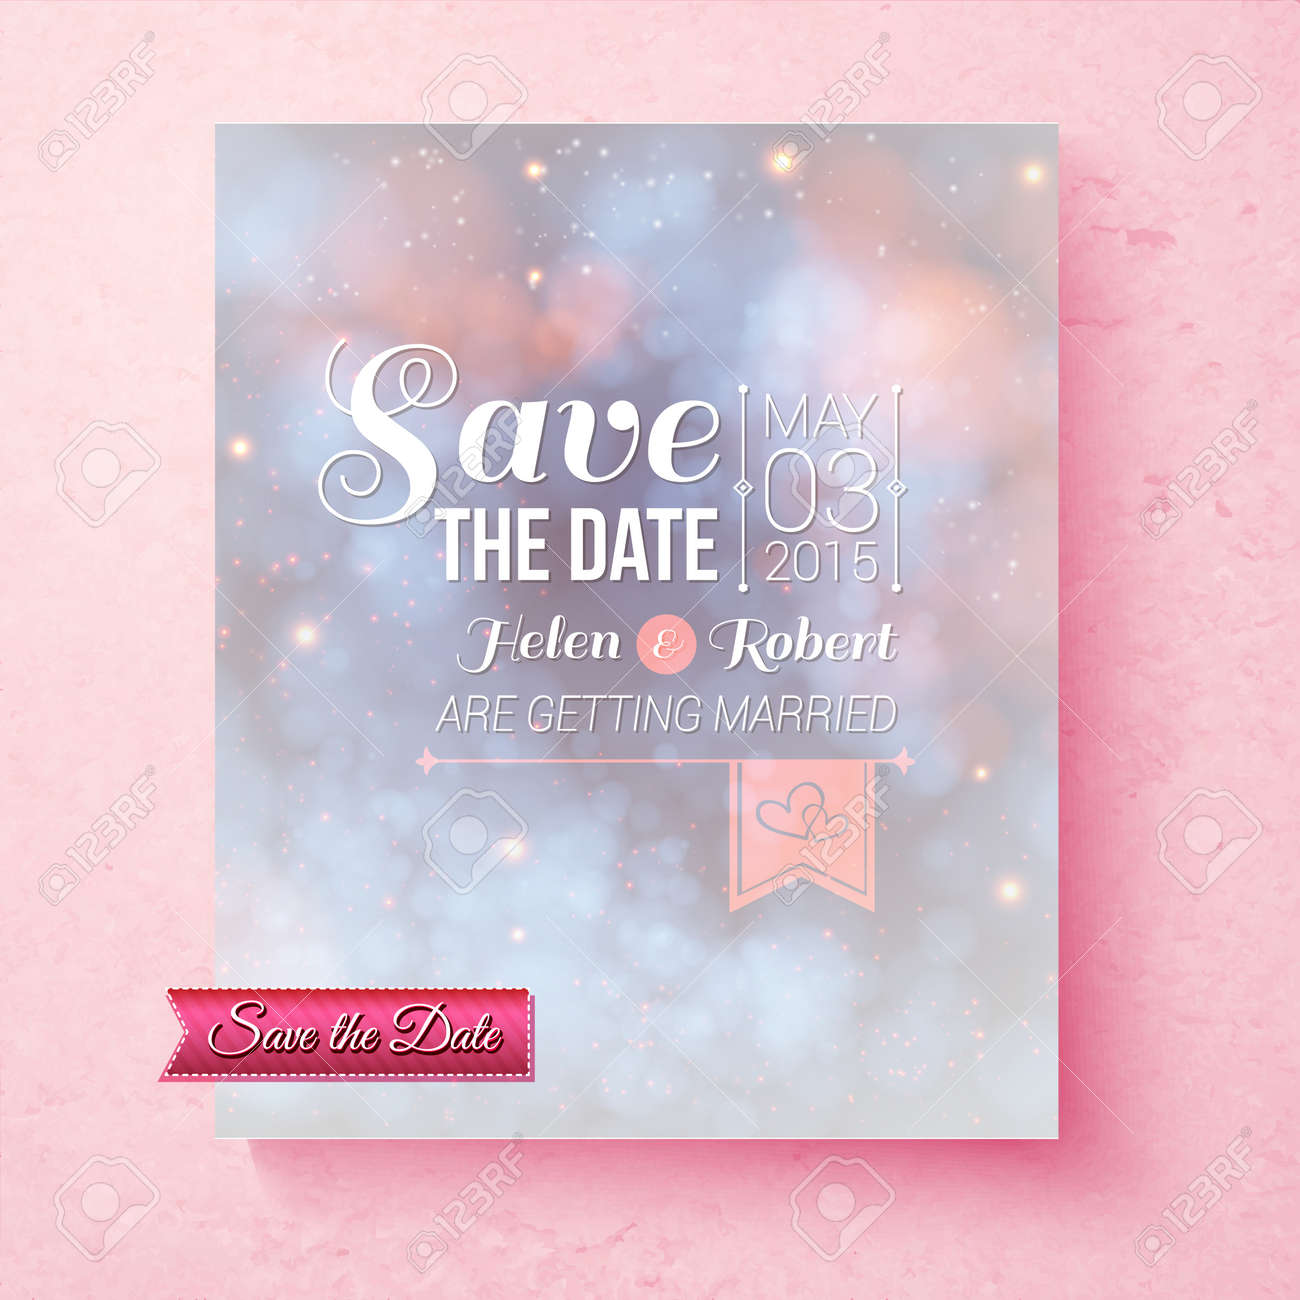 Soft ethereal save the date wedding invitation template with a banco de imagens soft ethereal save the date wedding invitation template with a subtle blend of pastel blue and pink and ornate white text over a pink stopboris Choice Image